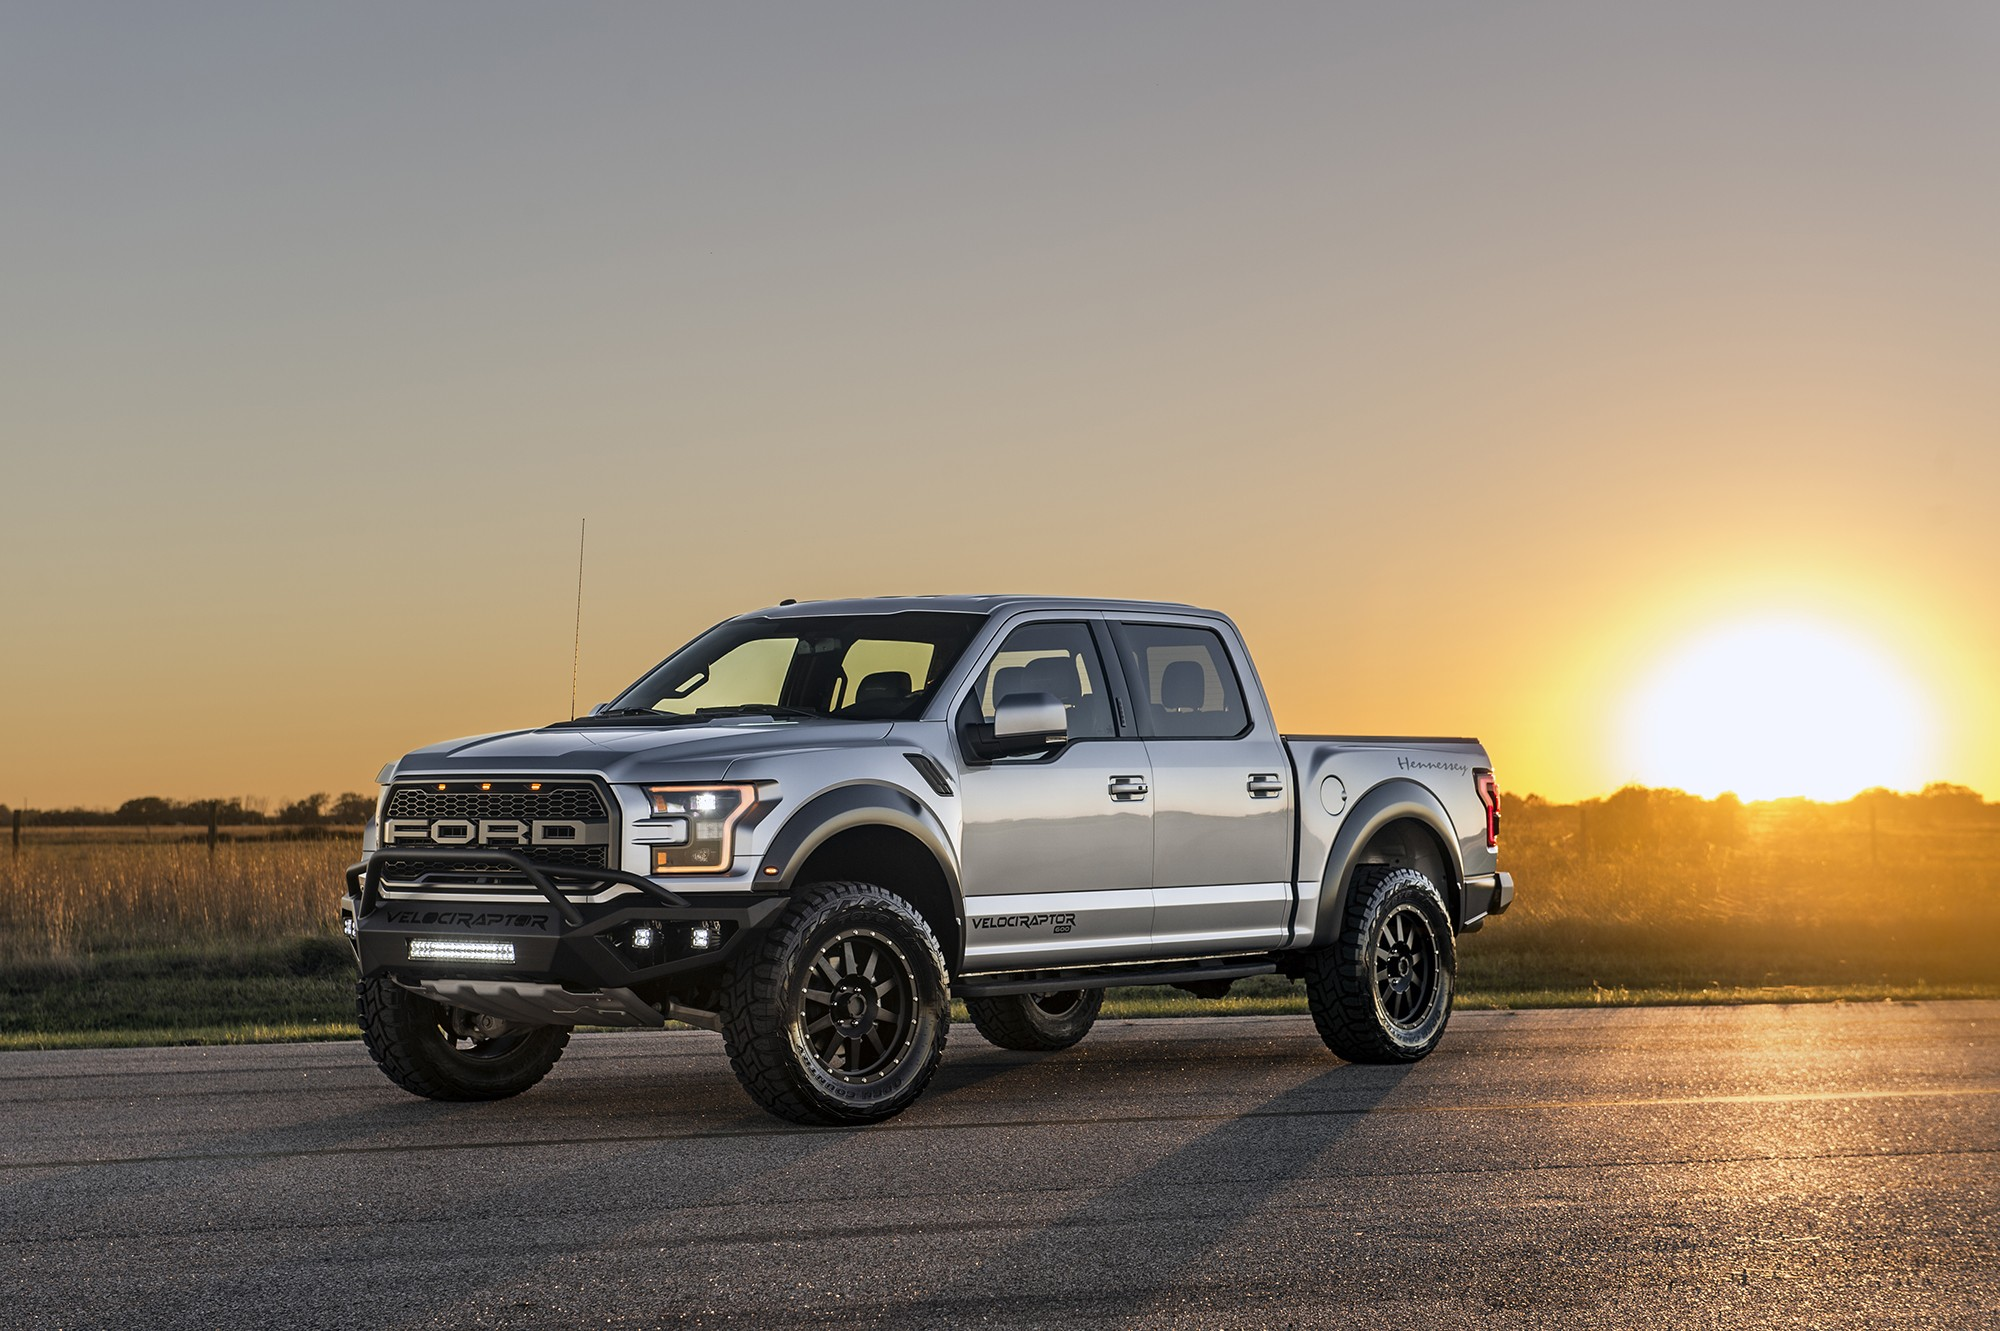 Hennessey Performance Tunes The 2020 Ford F-150 Raptor To ...